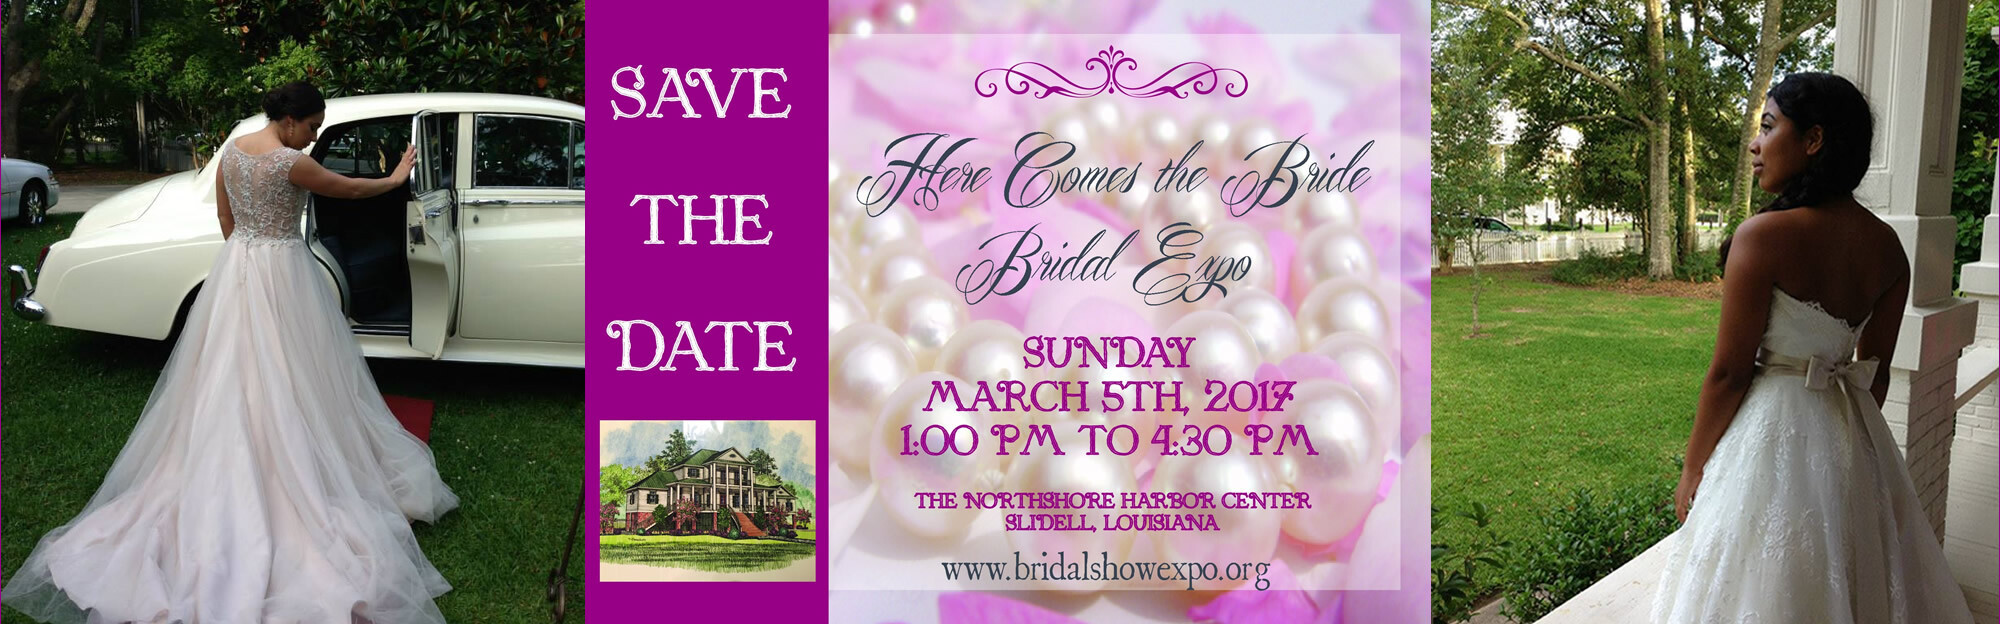 Here Comes the Bride Expo - Mar 5 2017 1:00 PM